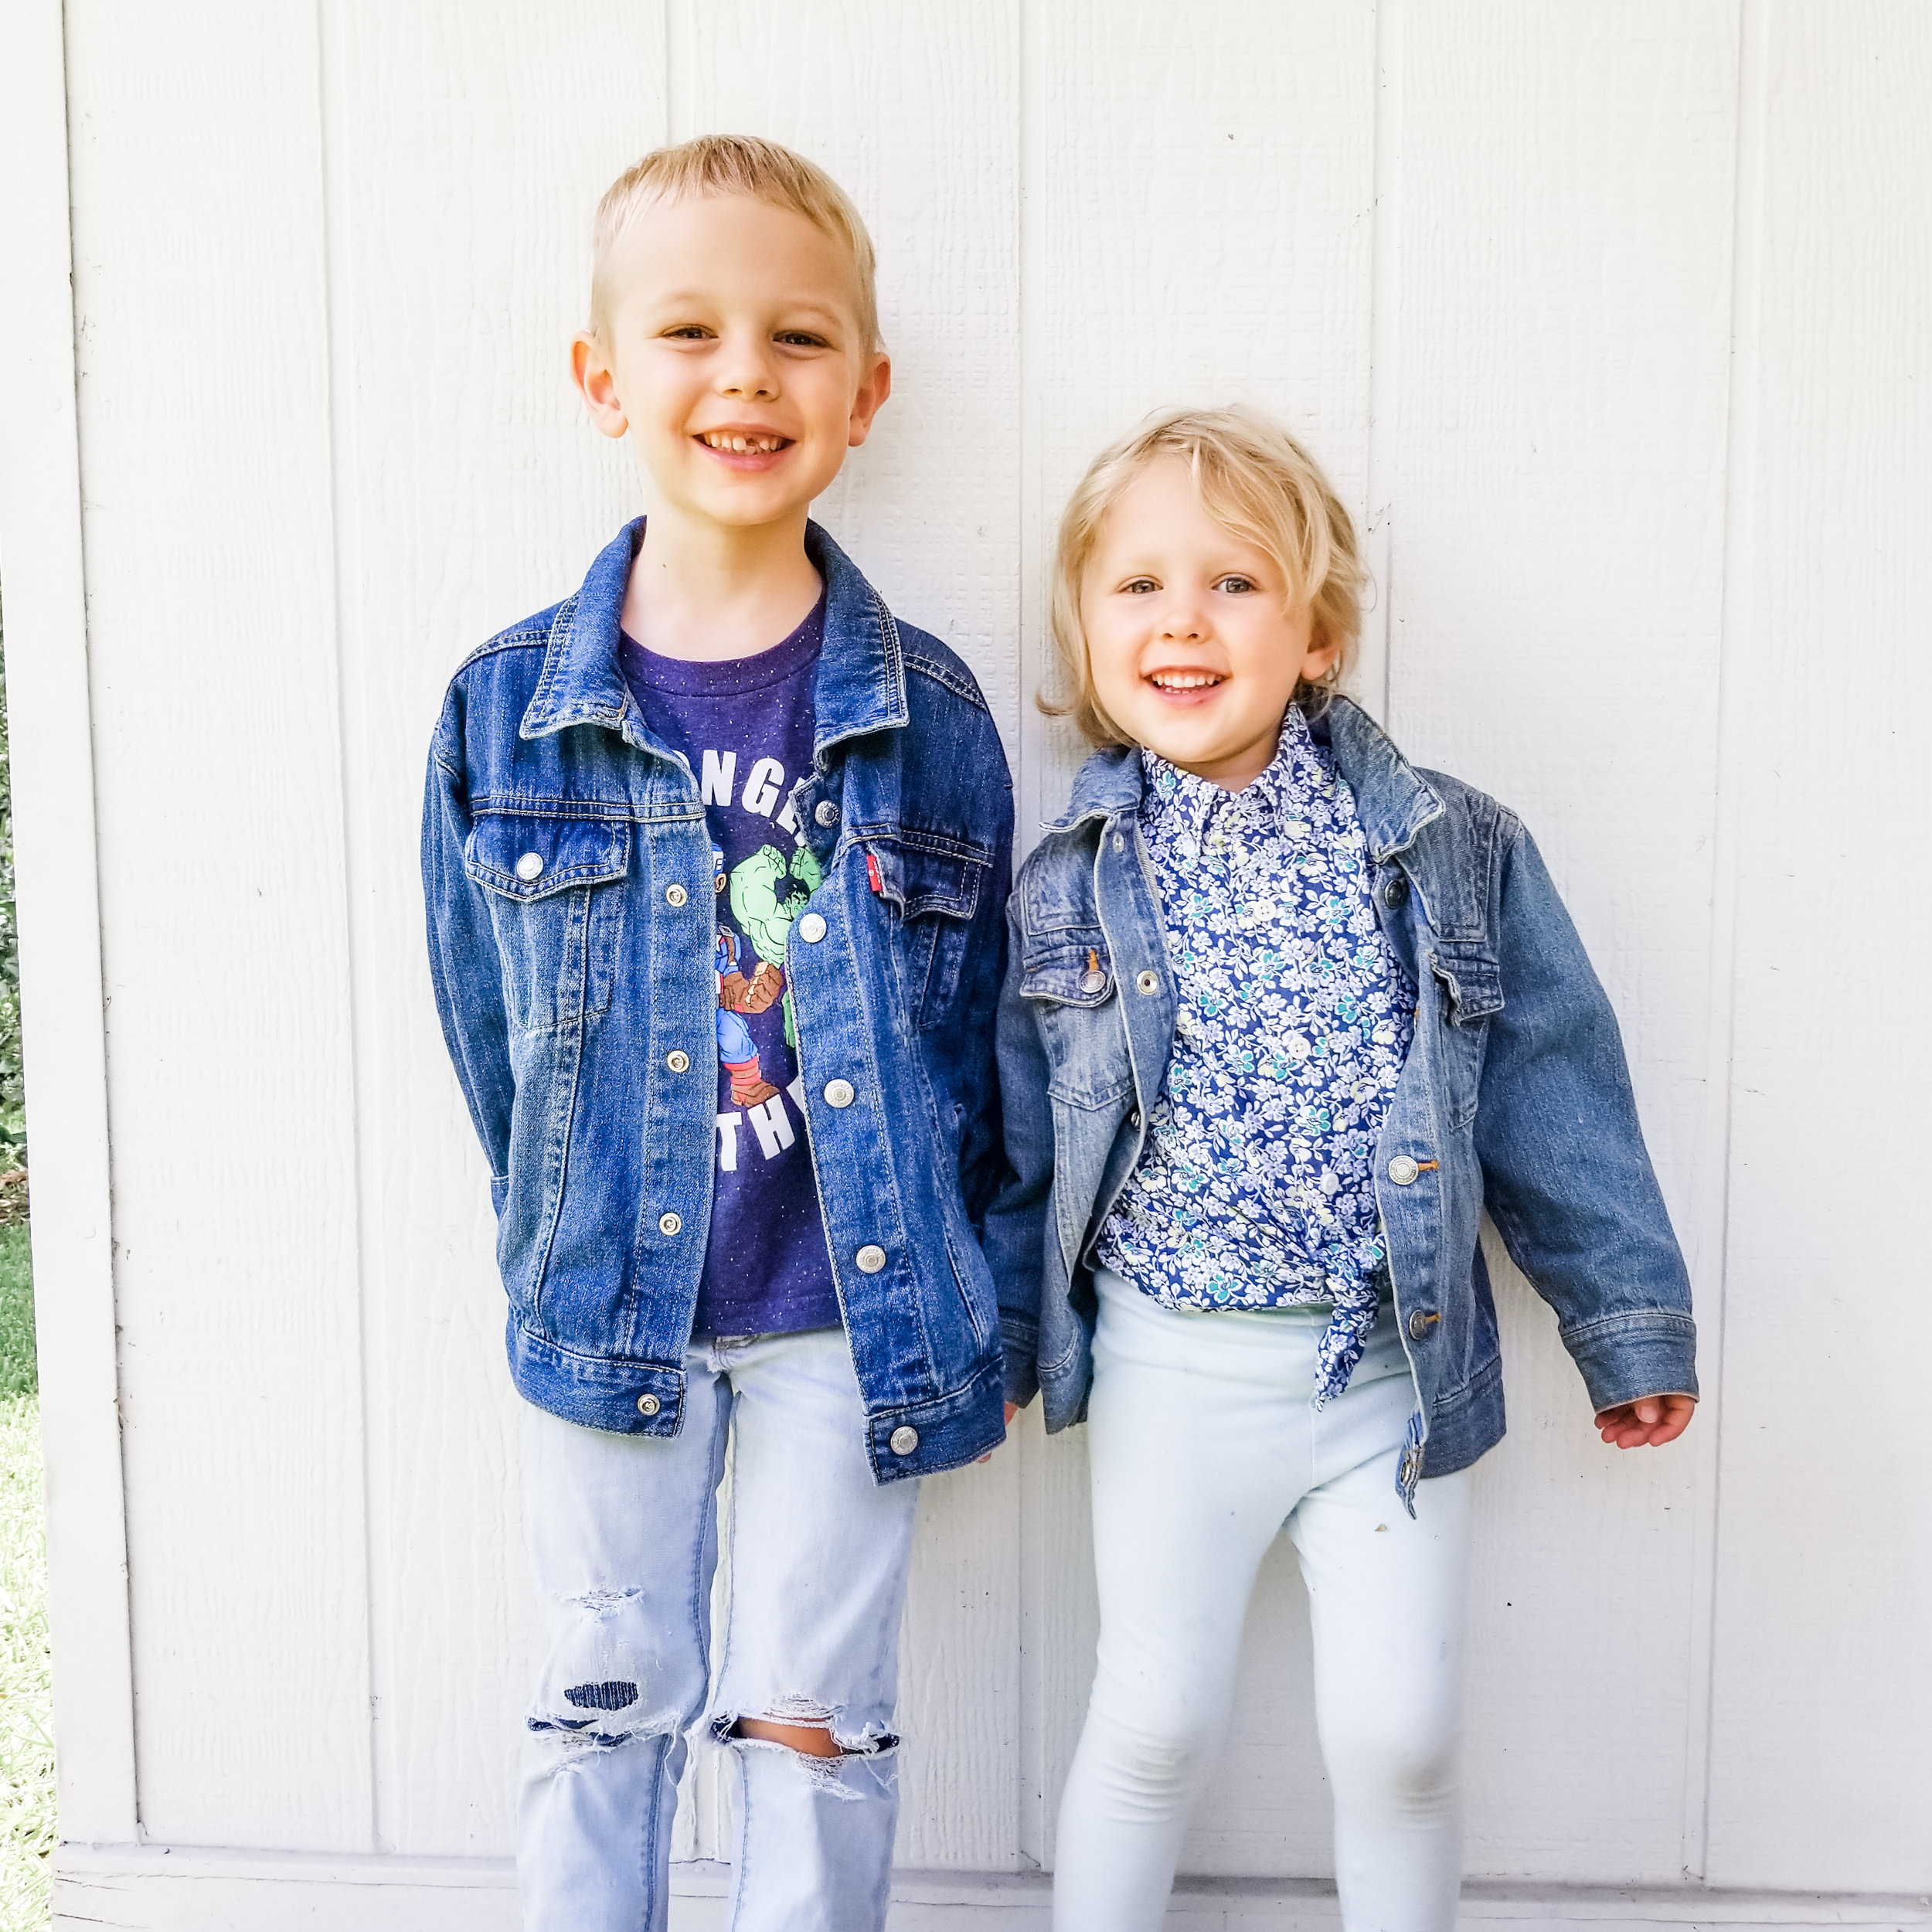 Just like the original picture above my kids wear a hodge podge of used, ethical, new and handmade items. (Details for original picture below.)  Outfits: Wesely- Old Navy Jeans (new), t-shirt and jean jacket (used). Pepper- Target Leggings (new), J. Crew floral top and Jean jacket (used).